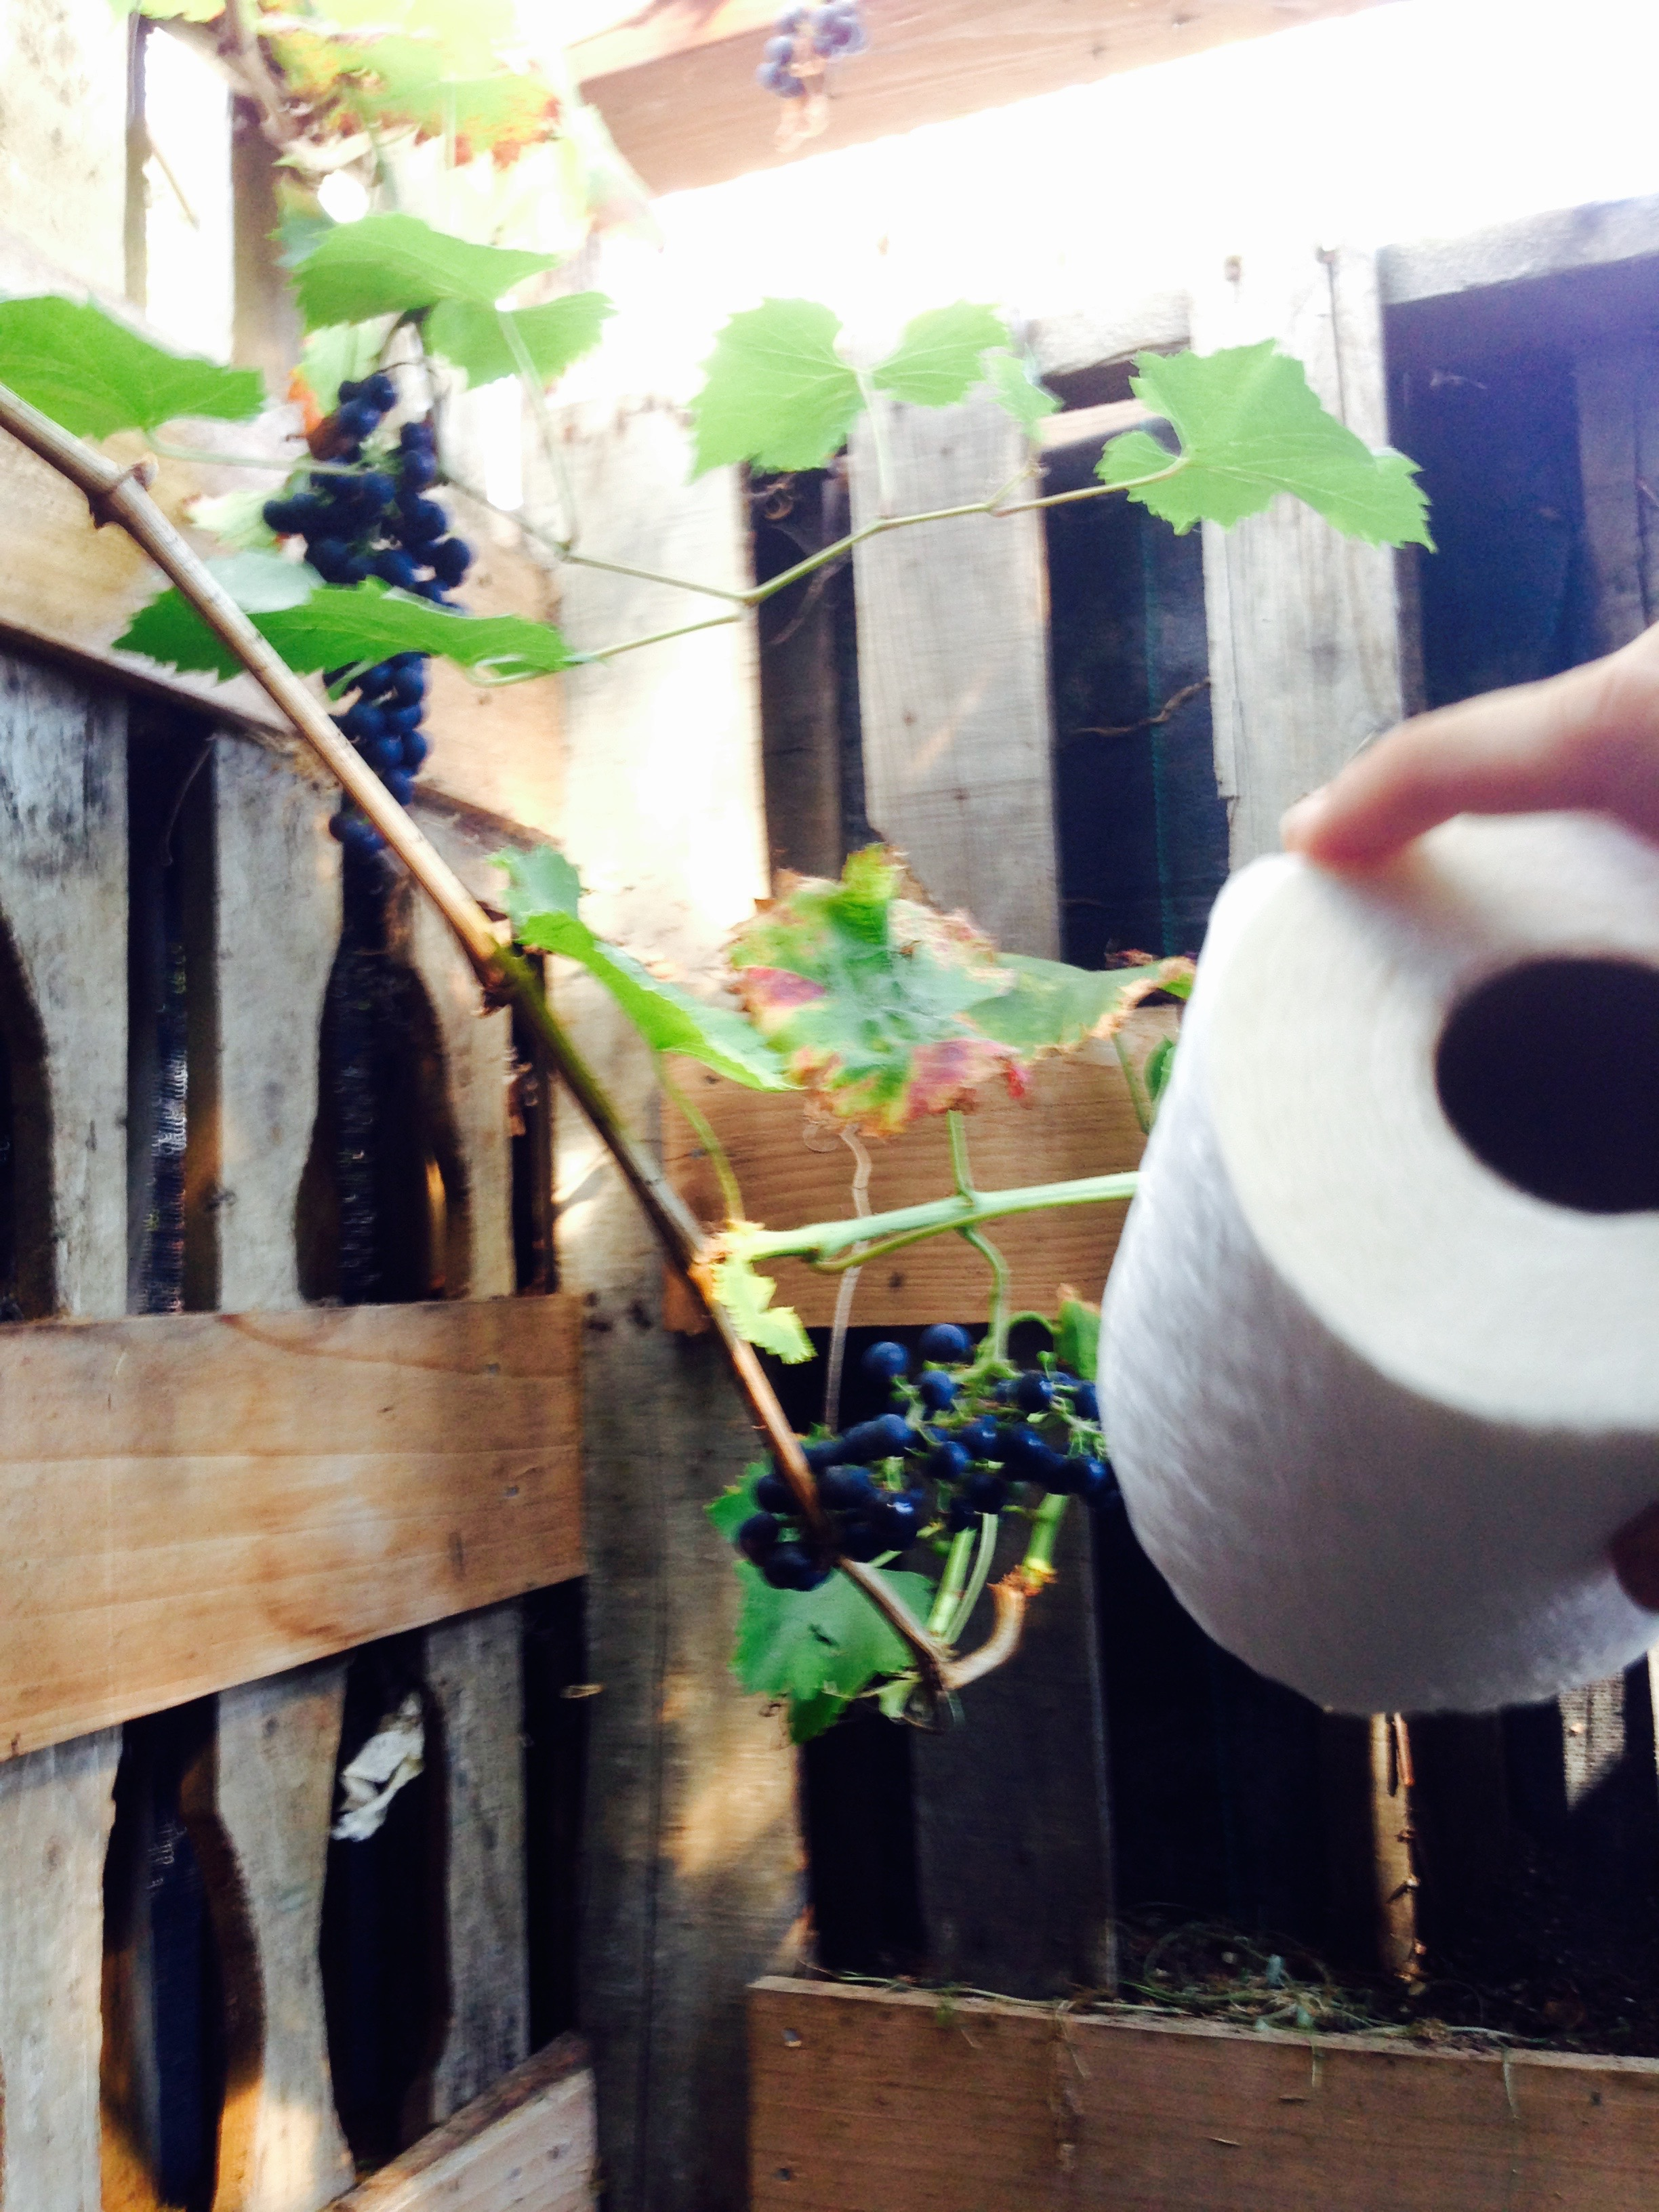 Compost toilet with grapes growing!